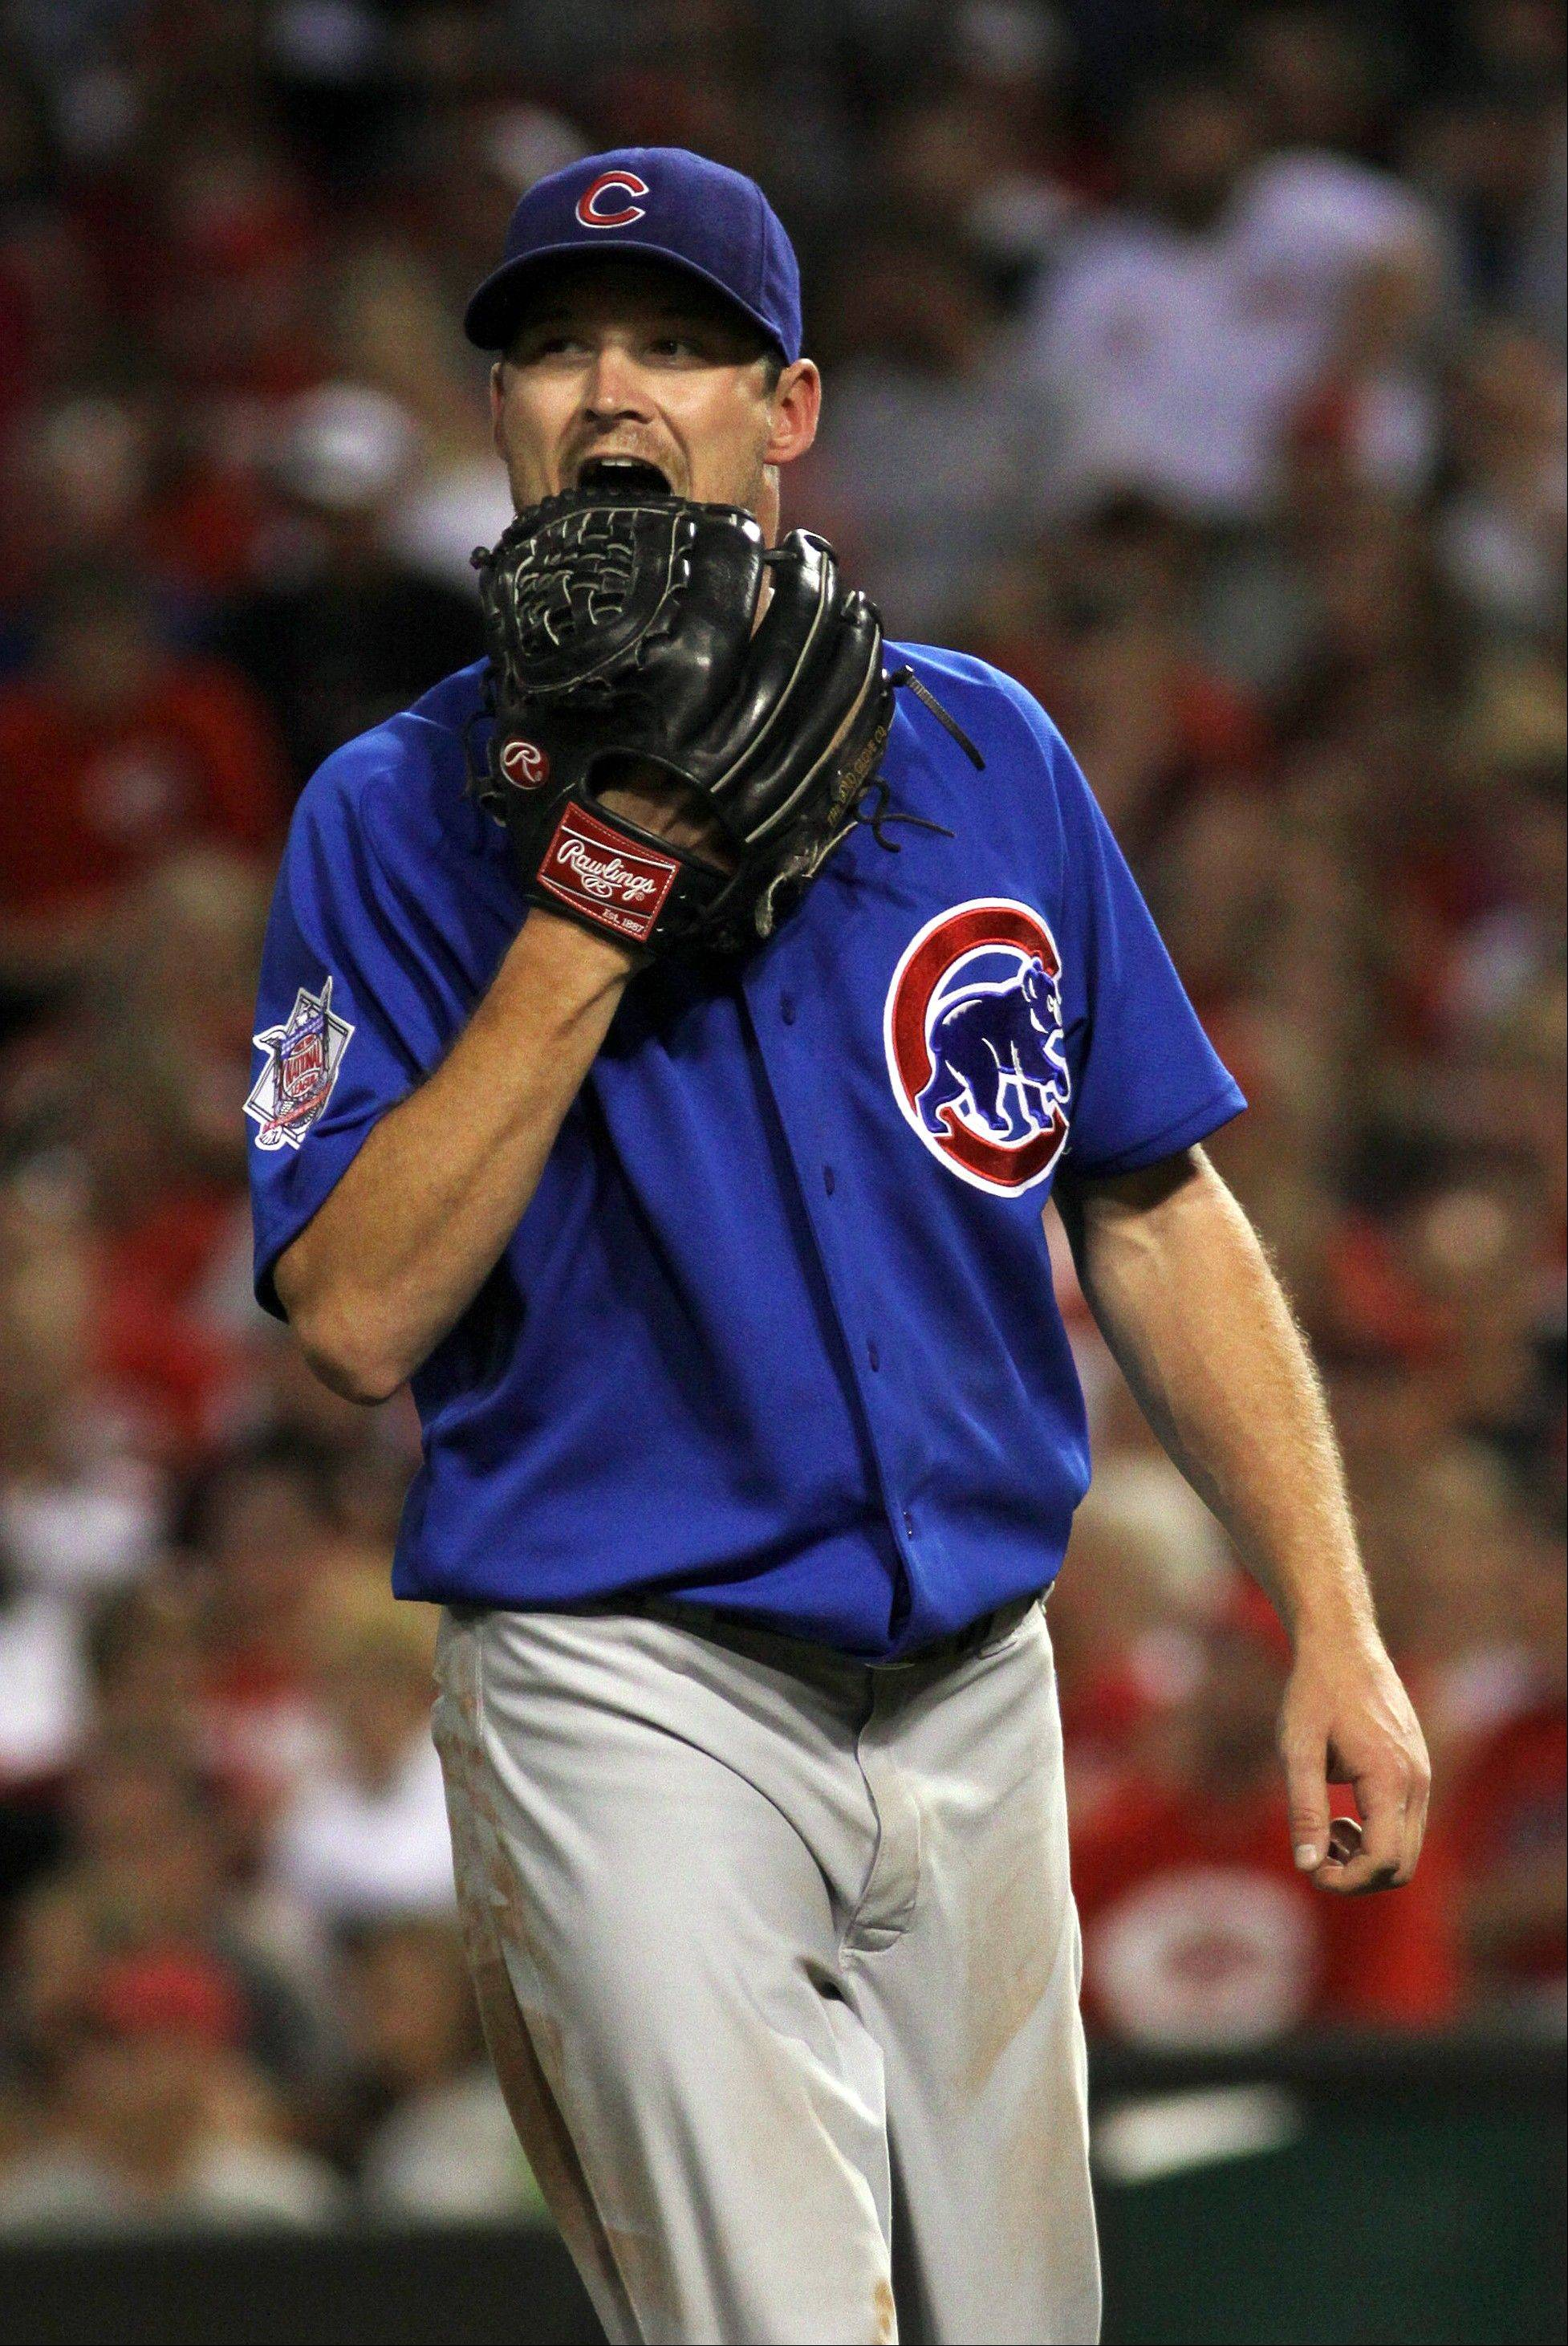 Cubs starter Travis Wood bites his glove as he walks off the field at the end of the fourth inning against the Cincinnati Reds on Friday in Cincinnati.